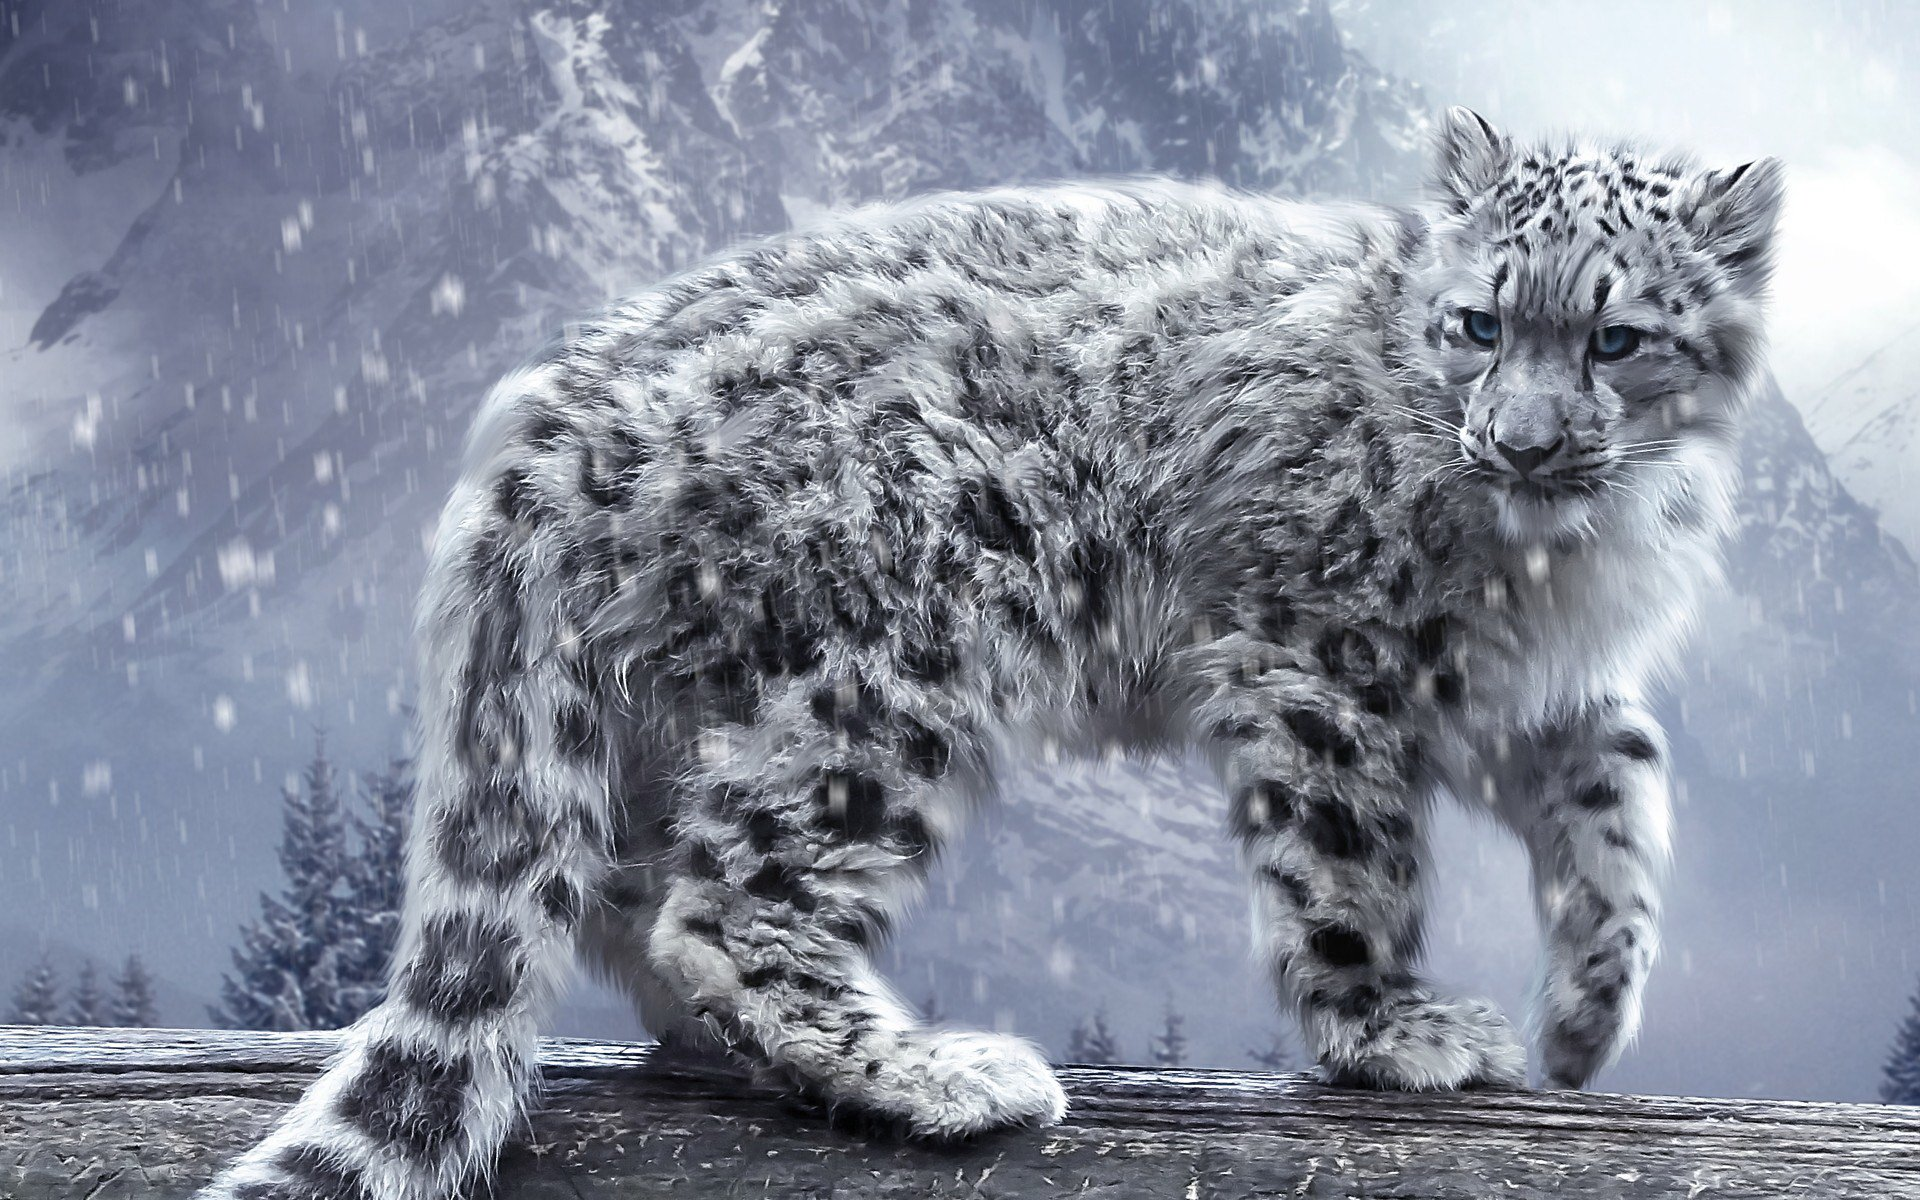 313 snow leopard hd wallpapers | background images - wallpaper abyss